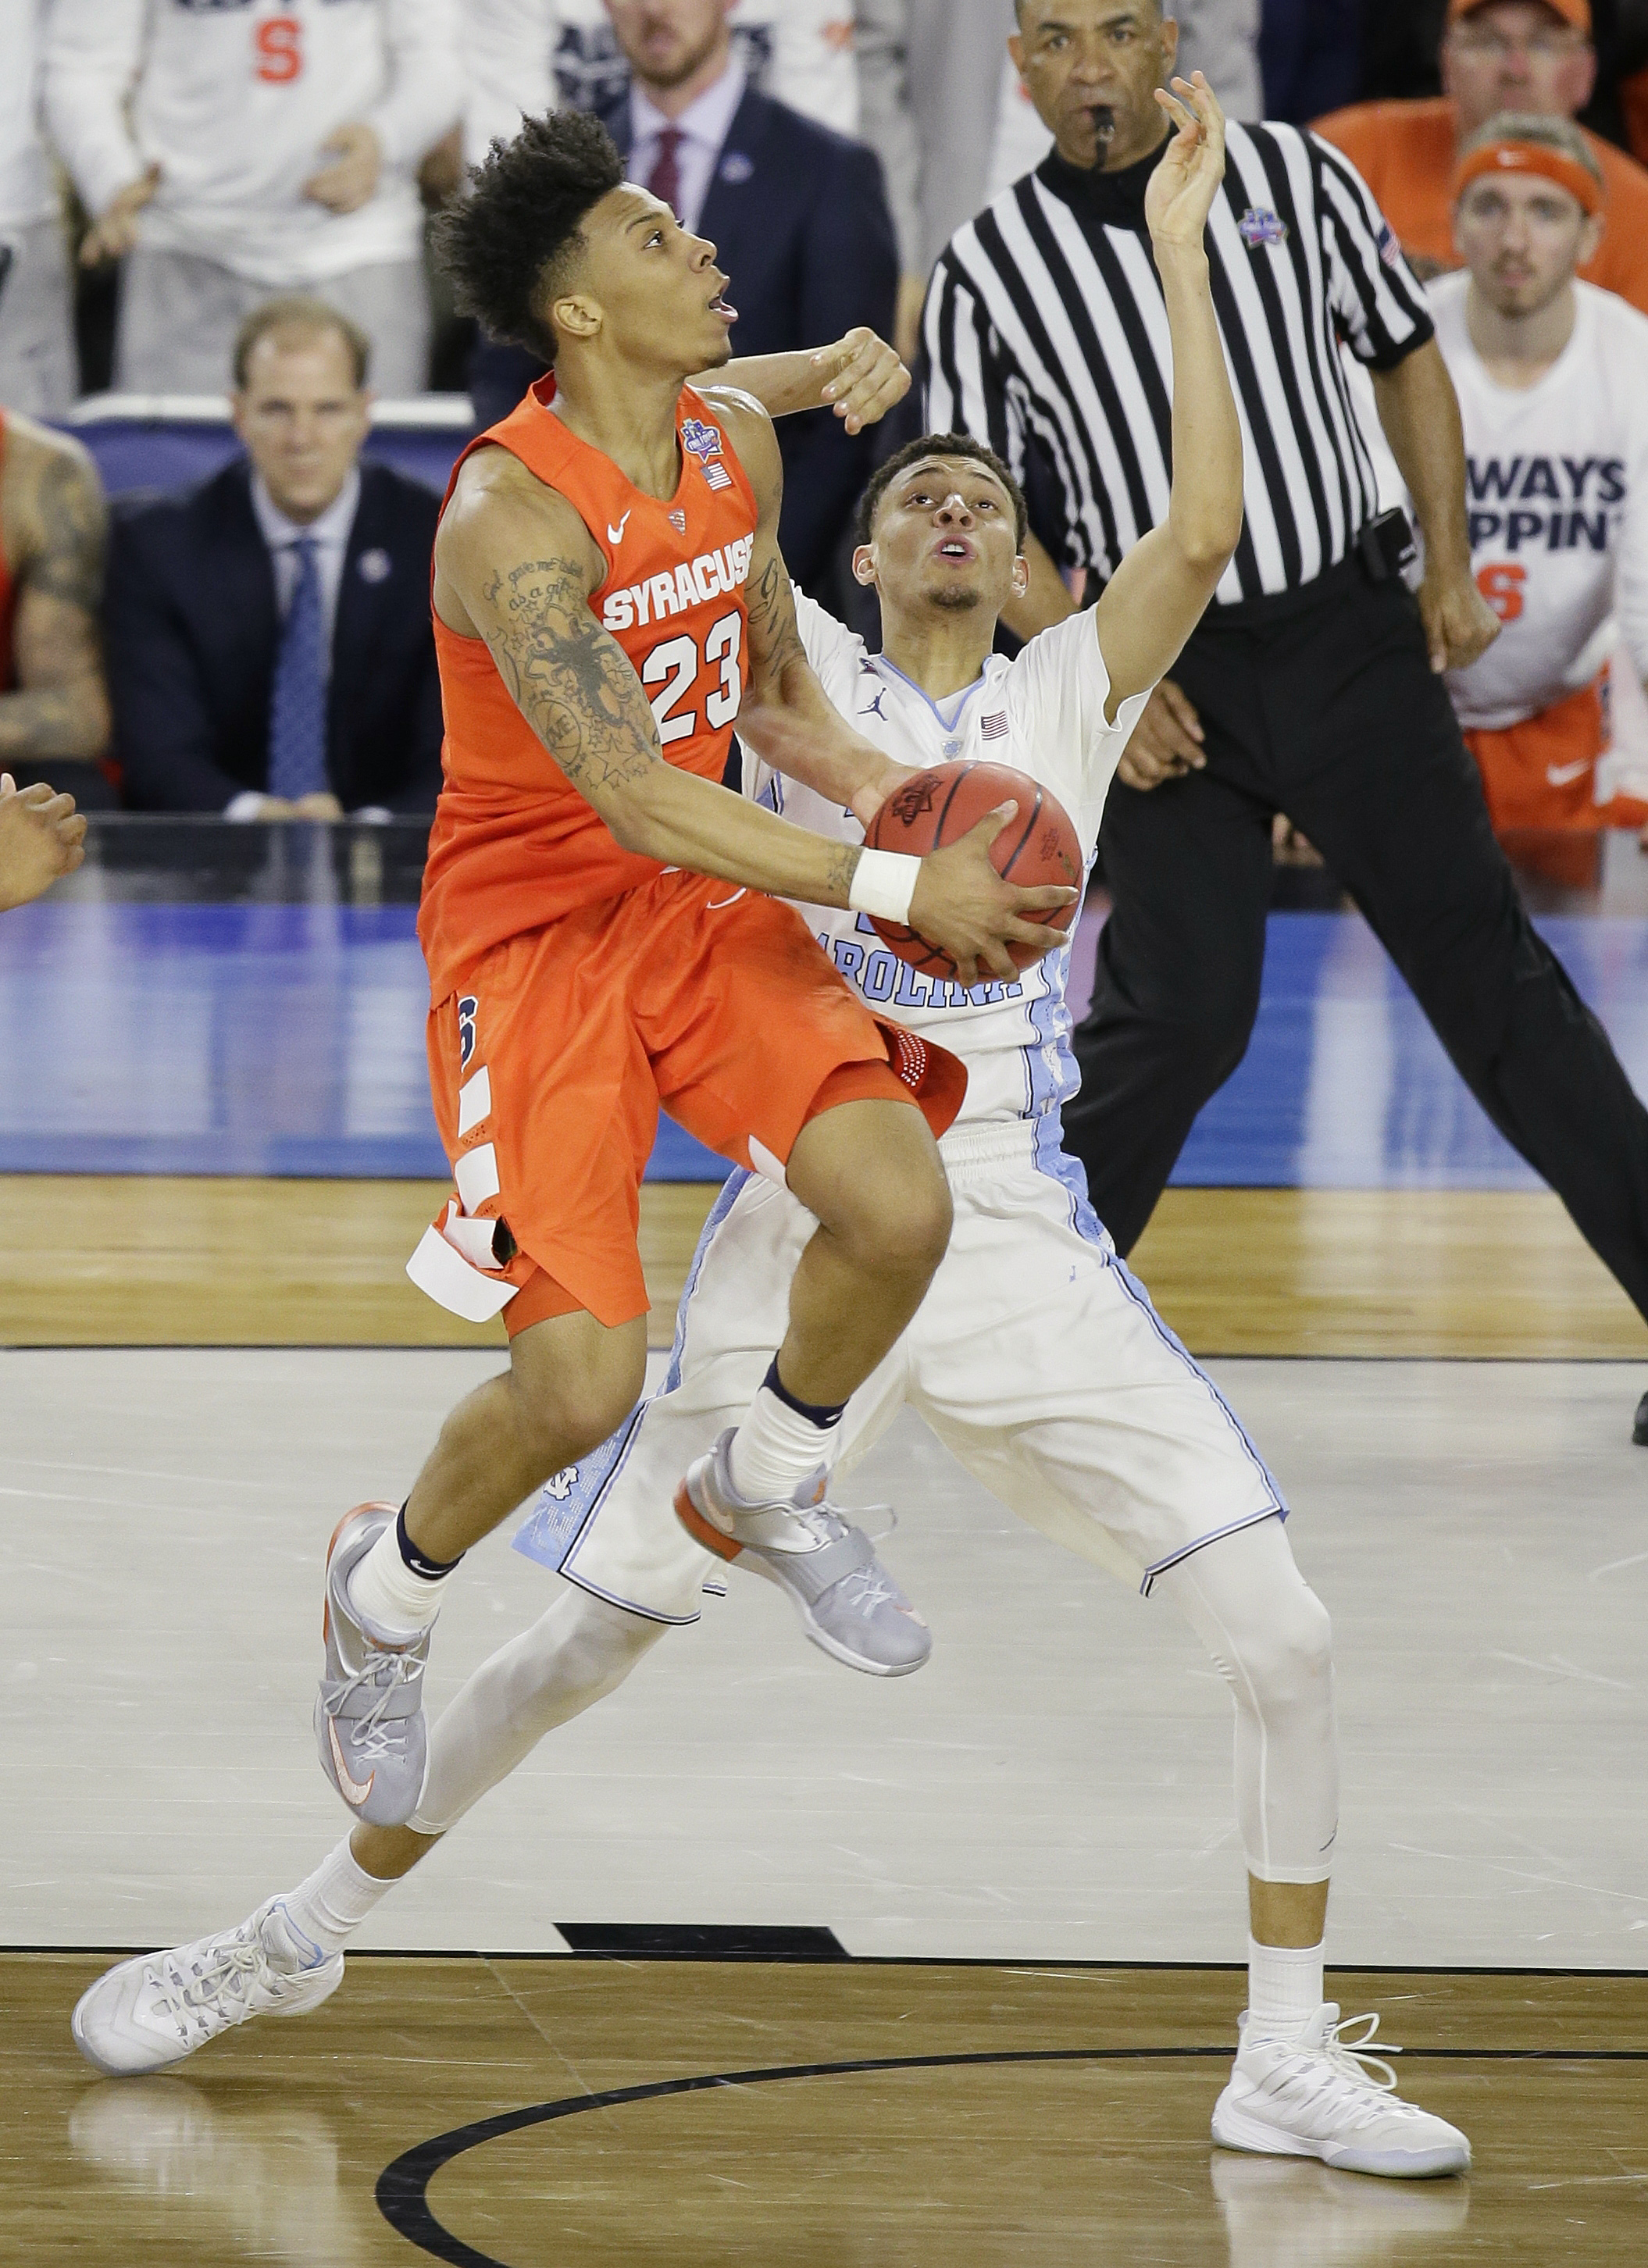 North Carolina forward Justin Jackson (44) works against Syracuse guard Malachi Richardson (23)  during the second half of the NCAA Final Four tournament college basketball semifinal game Saturday, April 2, 2016, in Houston. (AP Photo/Charlie Neibergall)